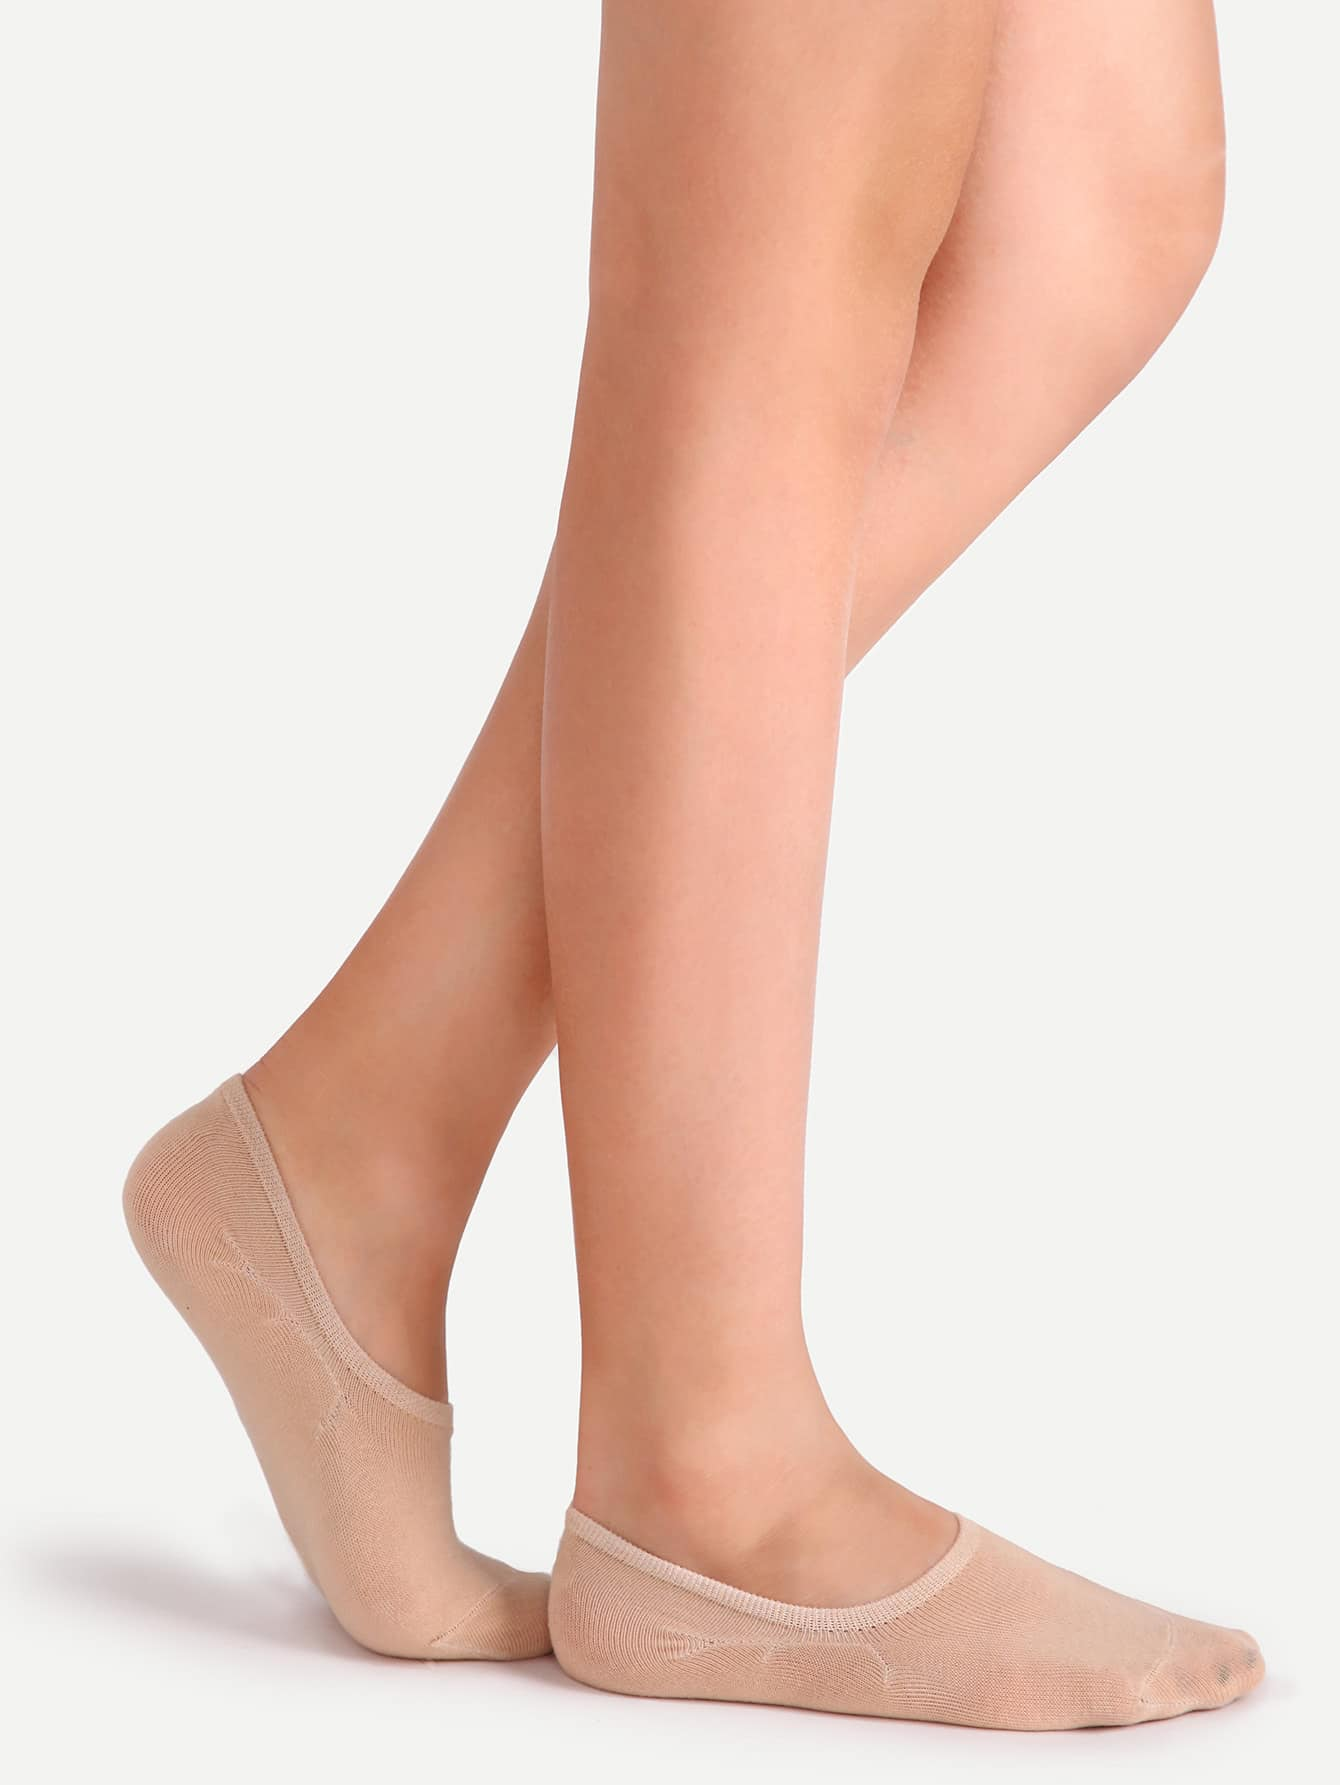 Nude No Show Socks For Women